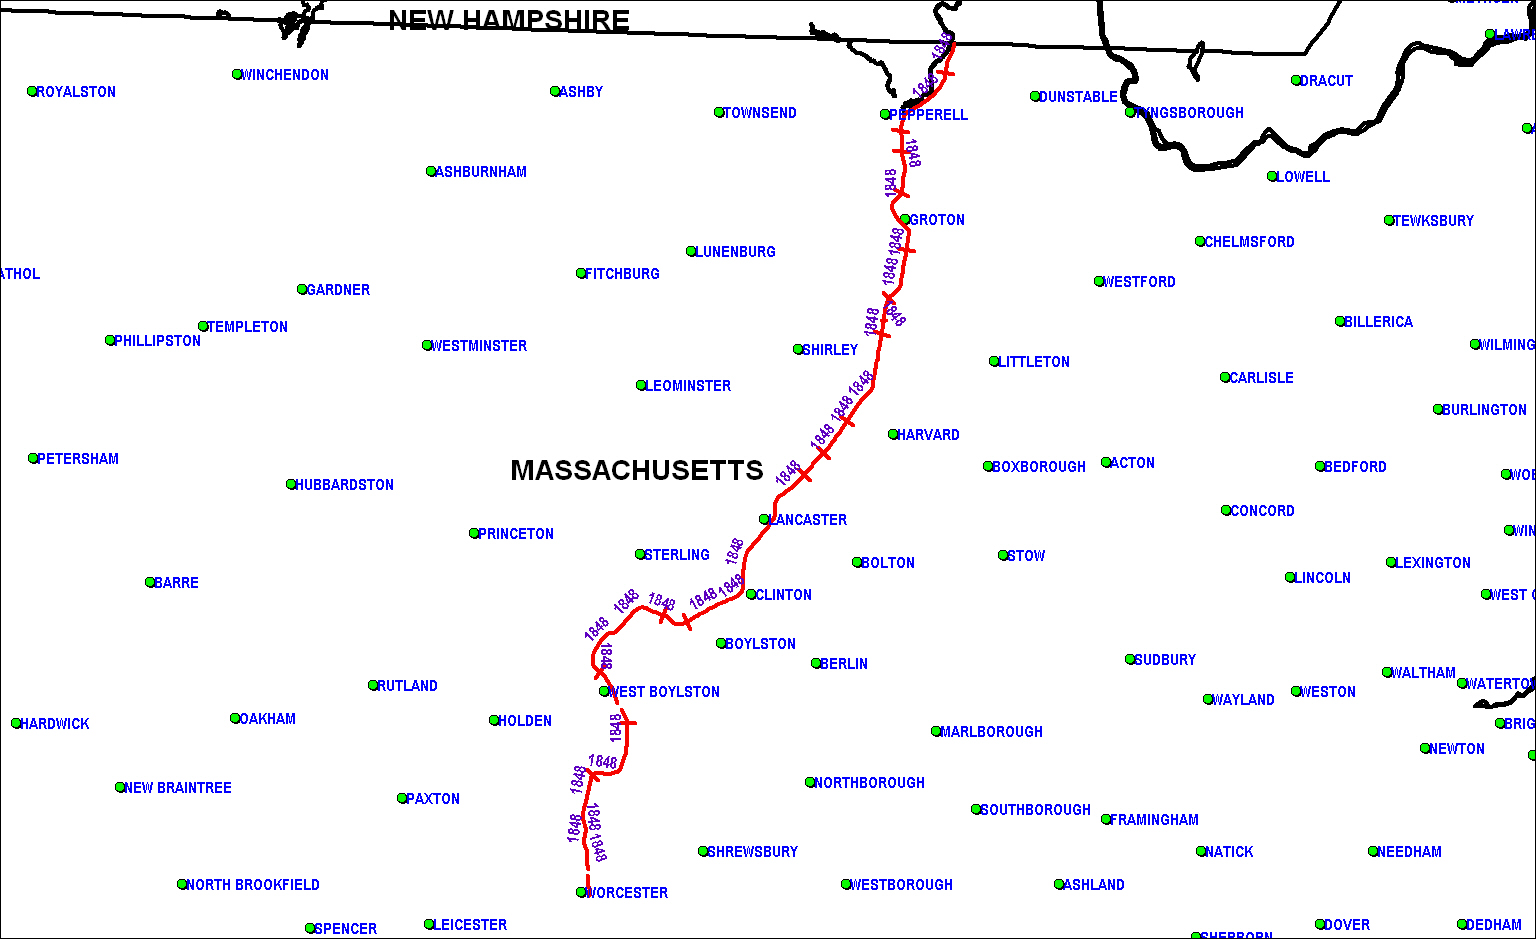 Worcester & Nashua Railroad map as of 1850